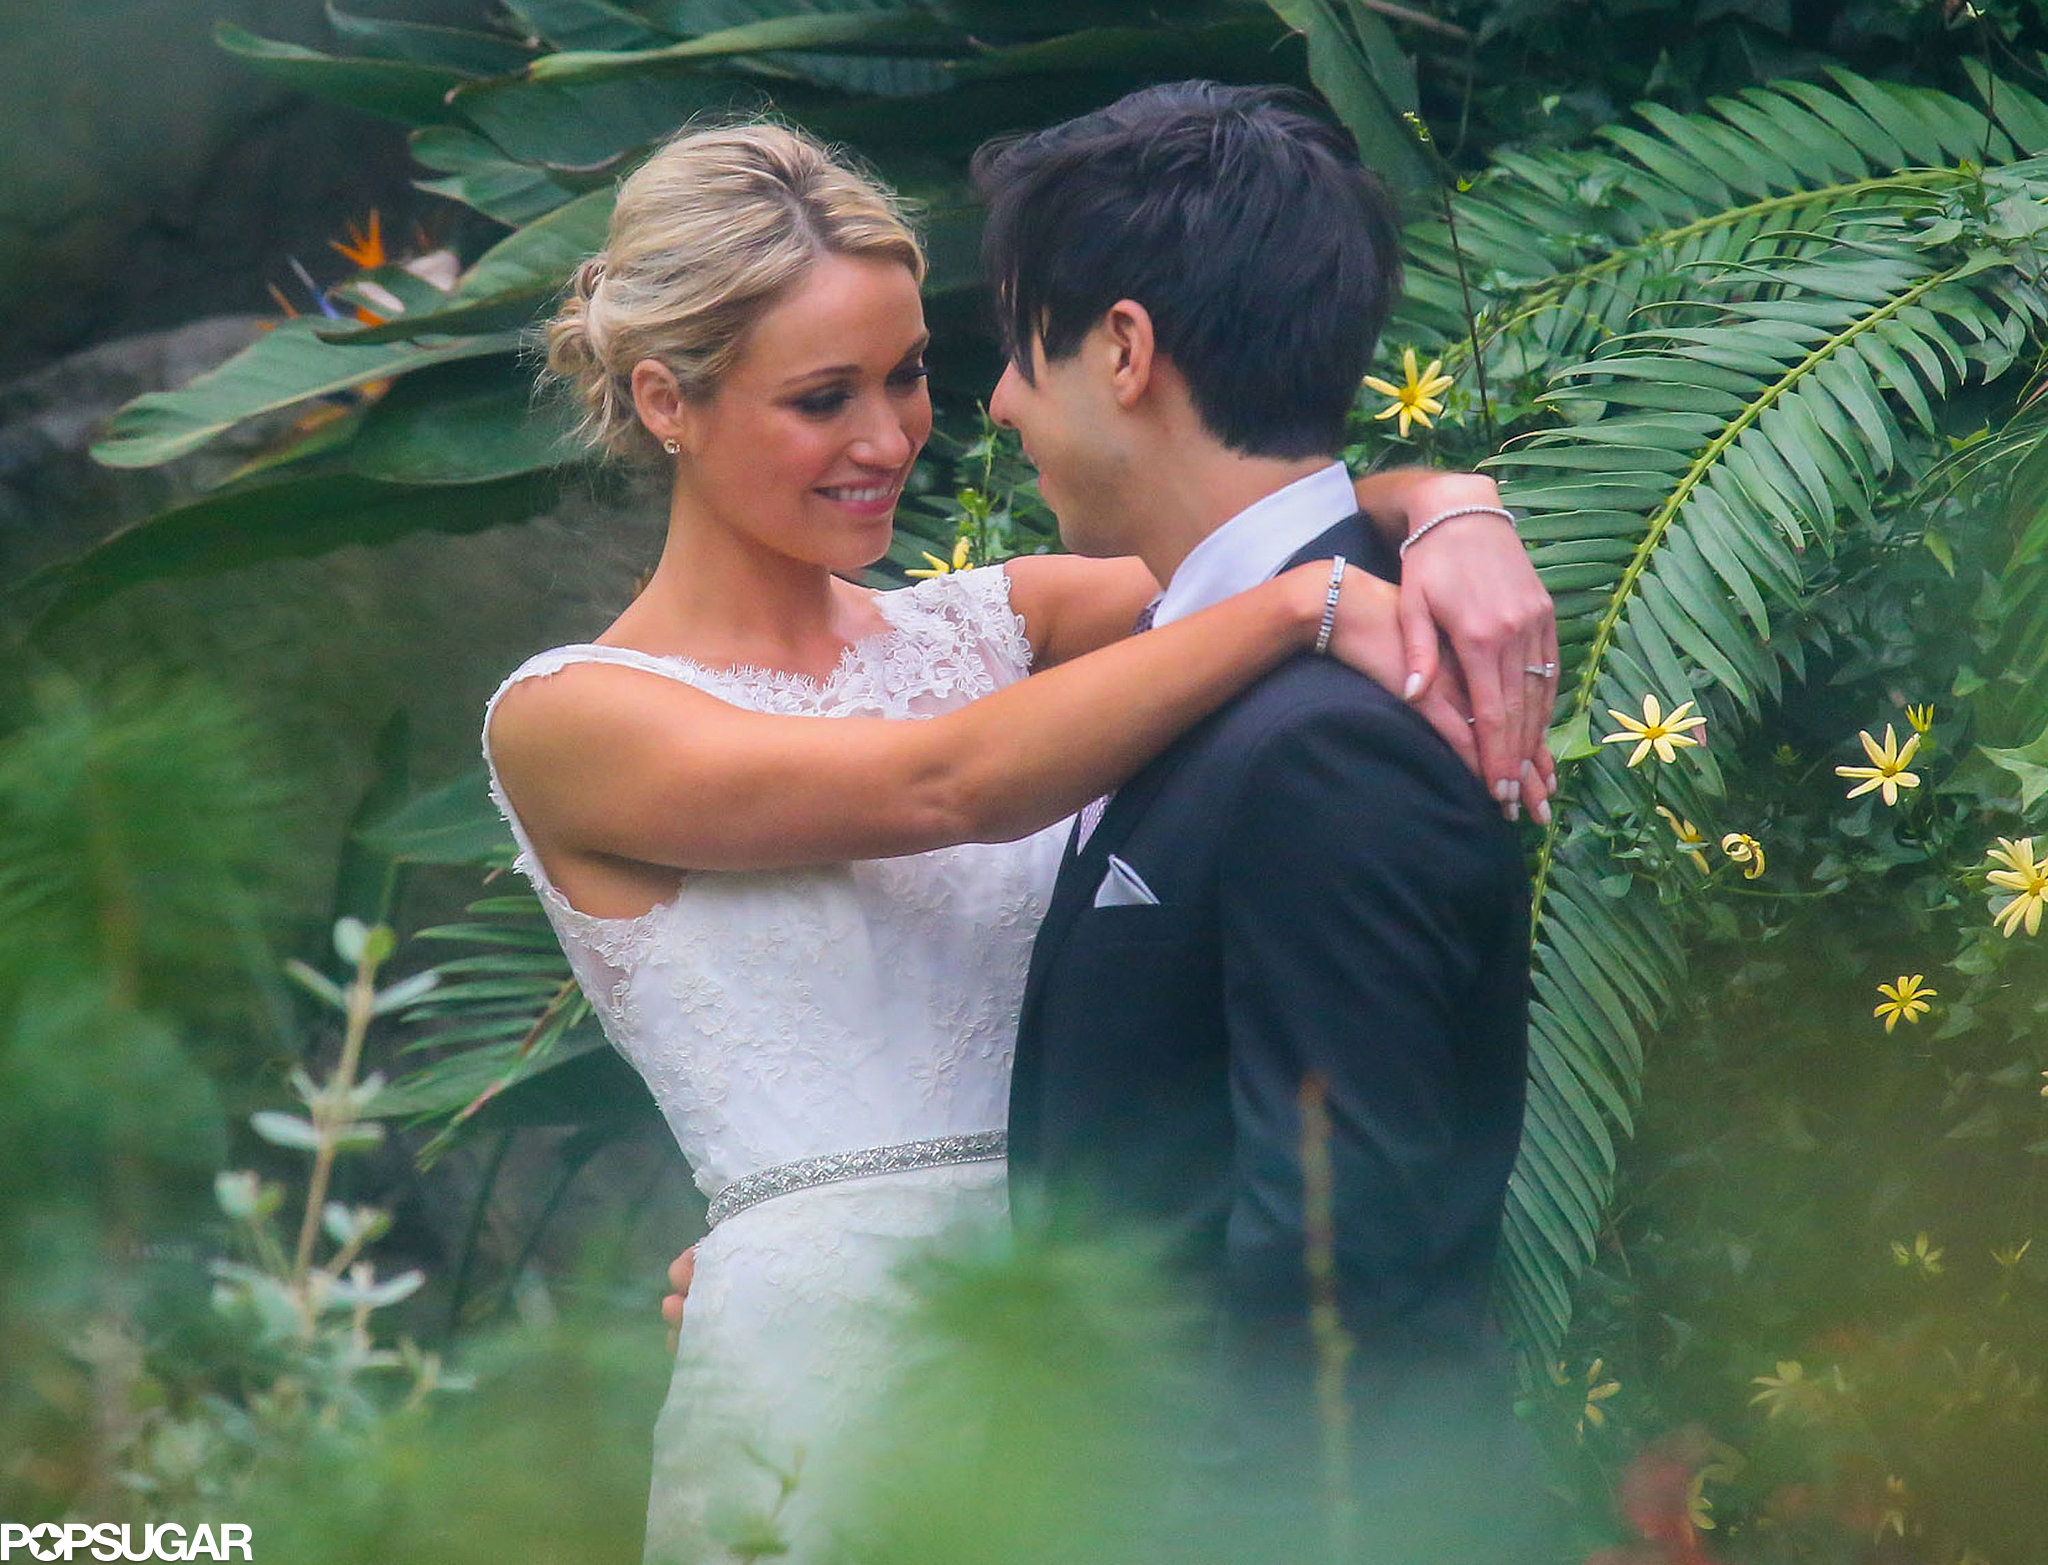 Katrina Bowden and Ben Jorgensen held their wedding ceremony at the Brooklyn Botanic Gardens.